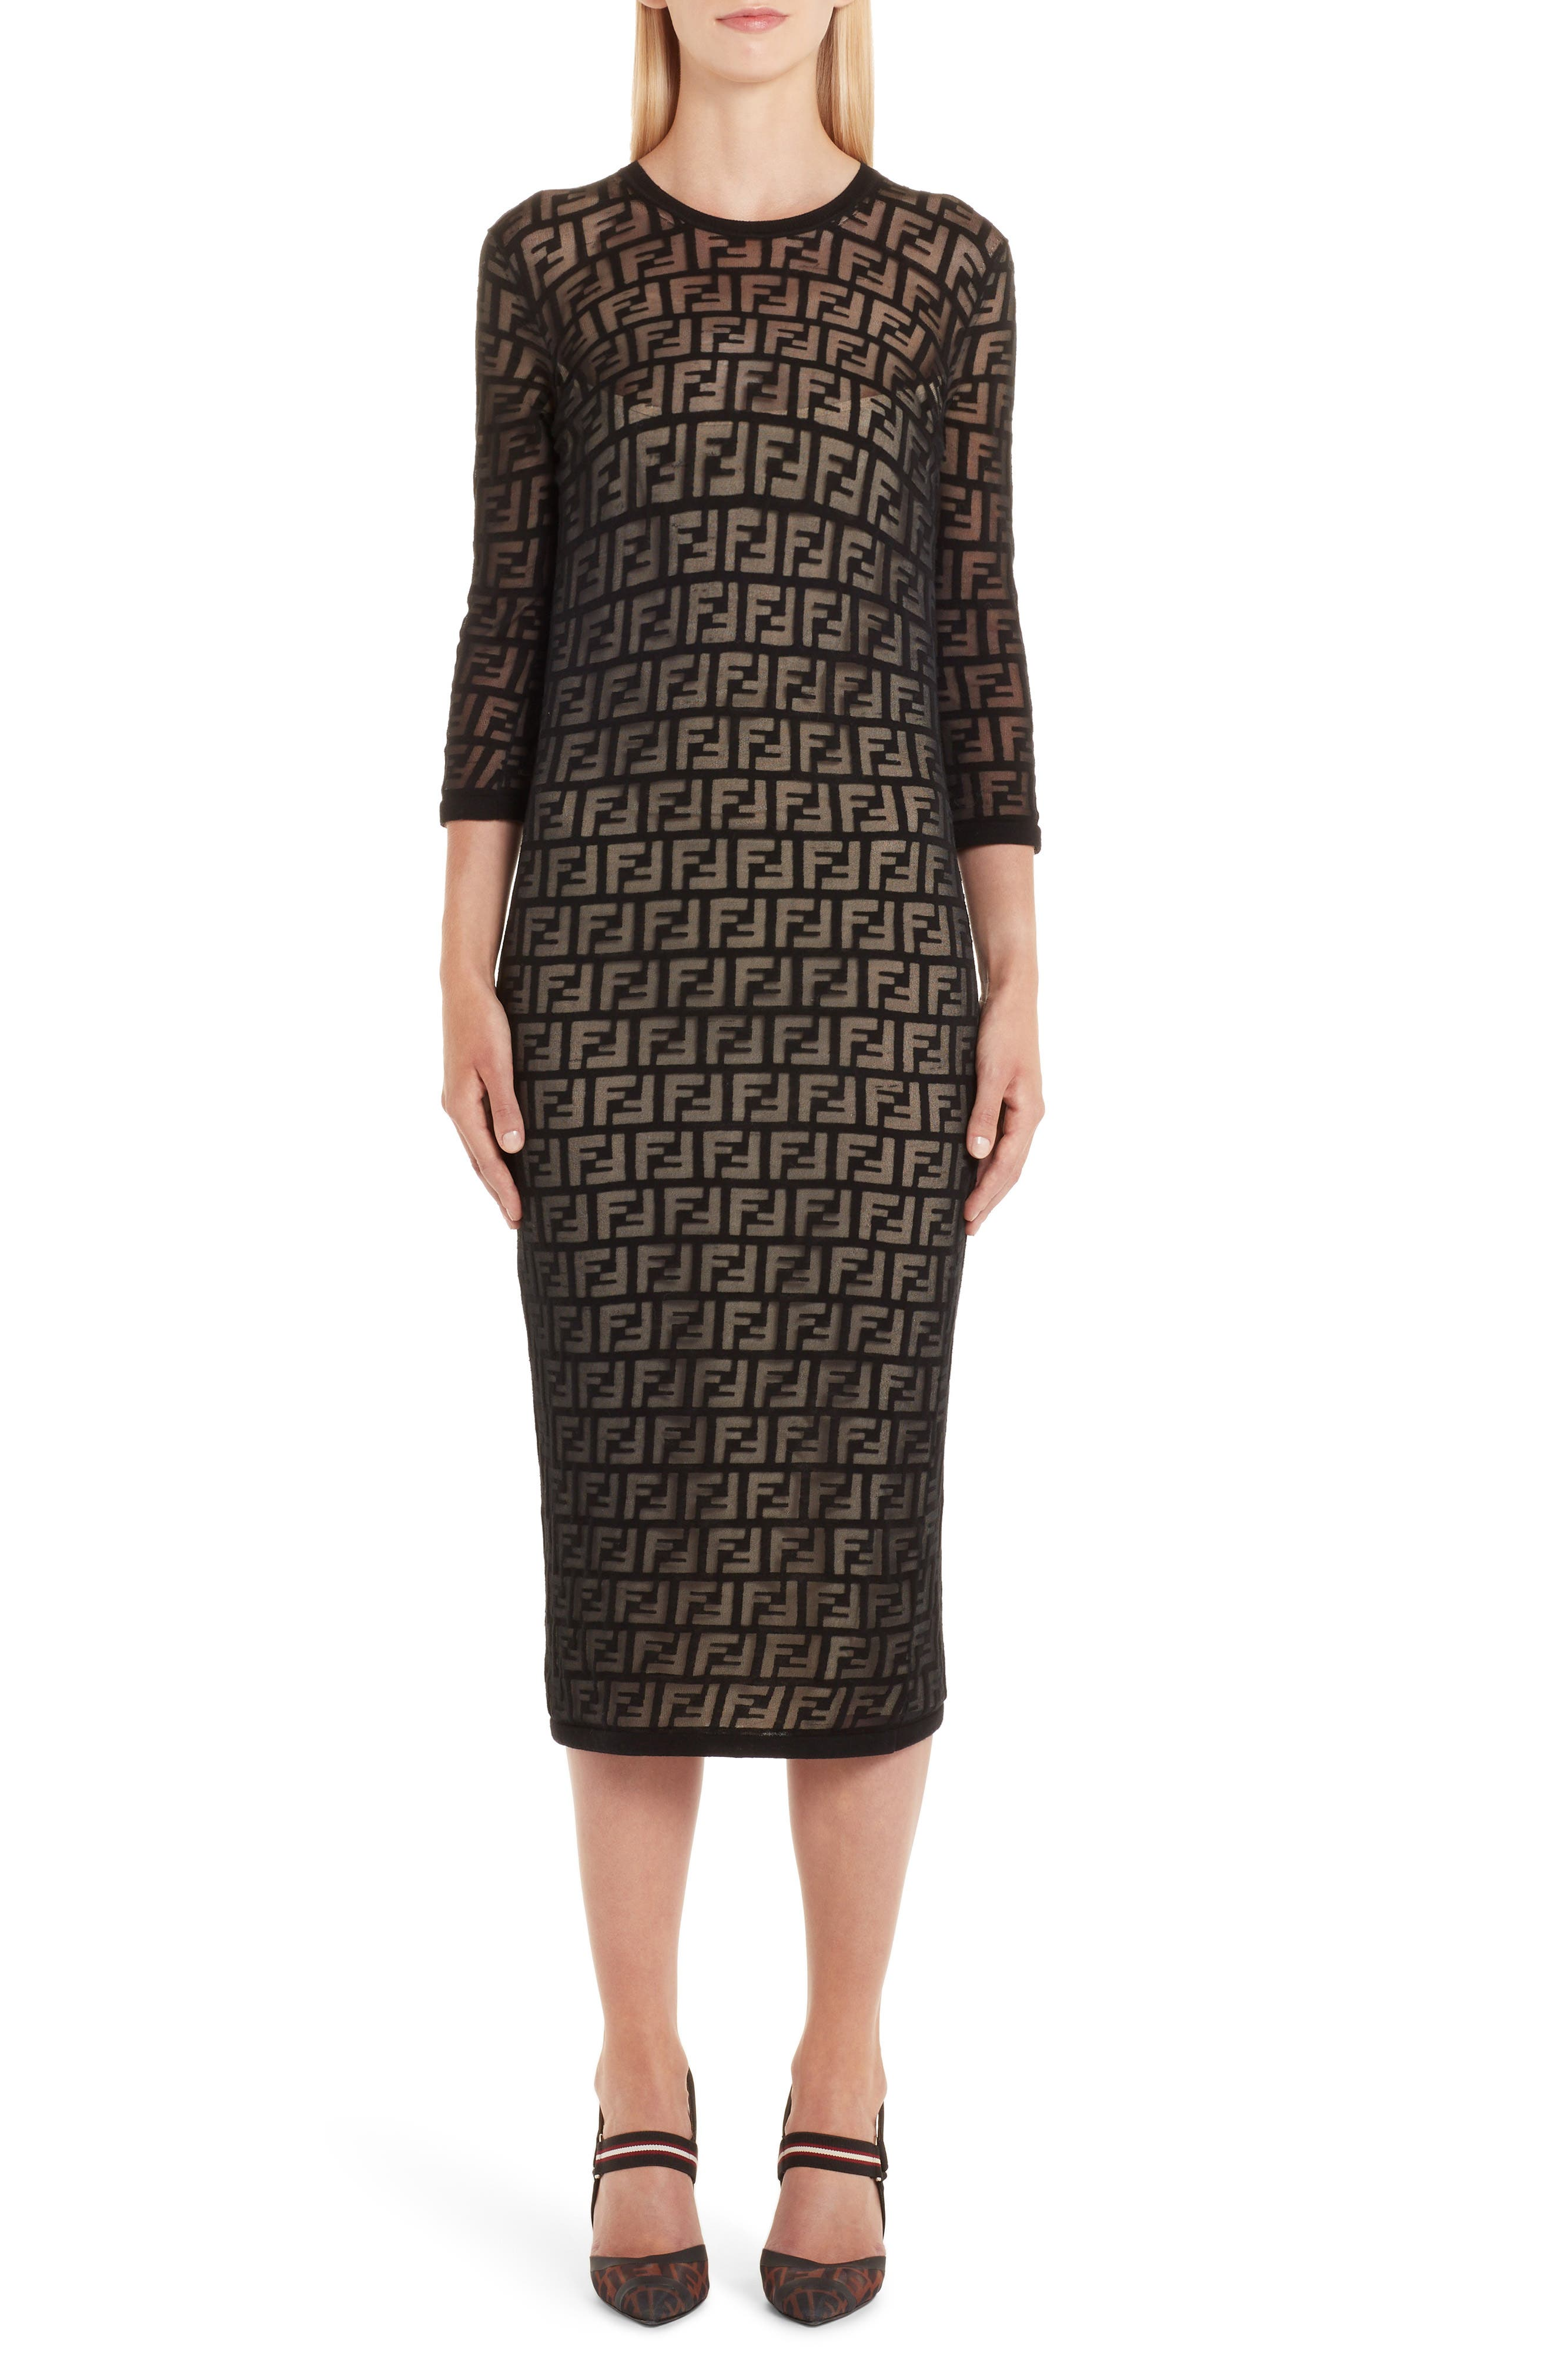 Fendi Ff Devore Knit Dress, 6 IT - Black